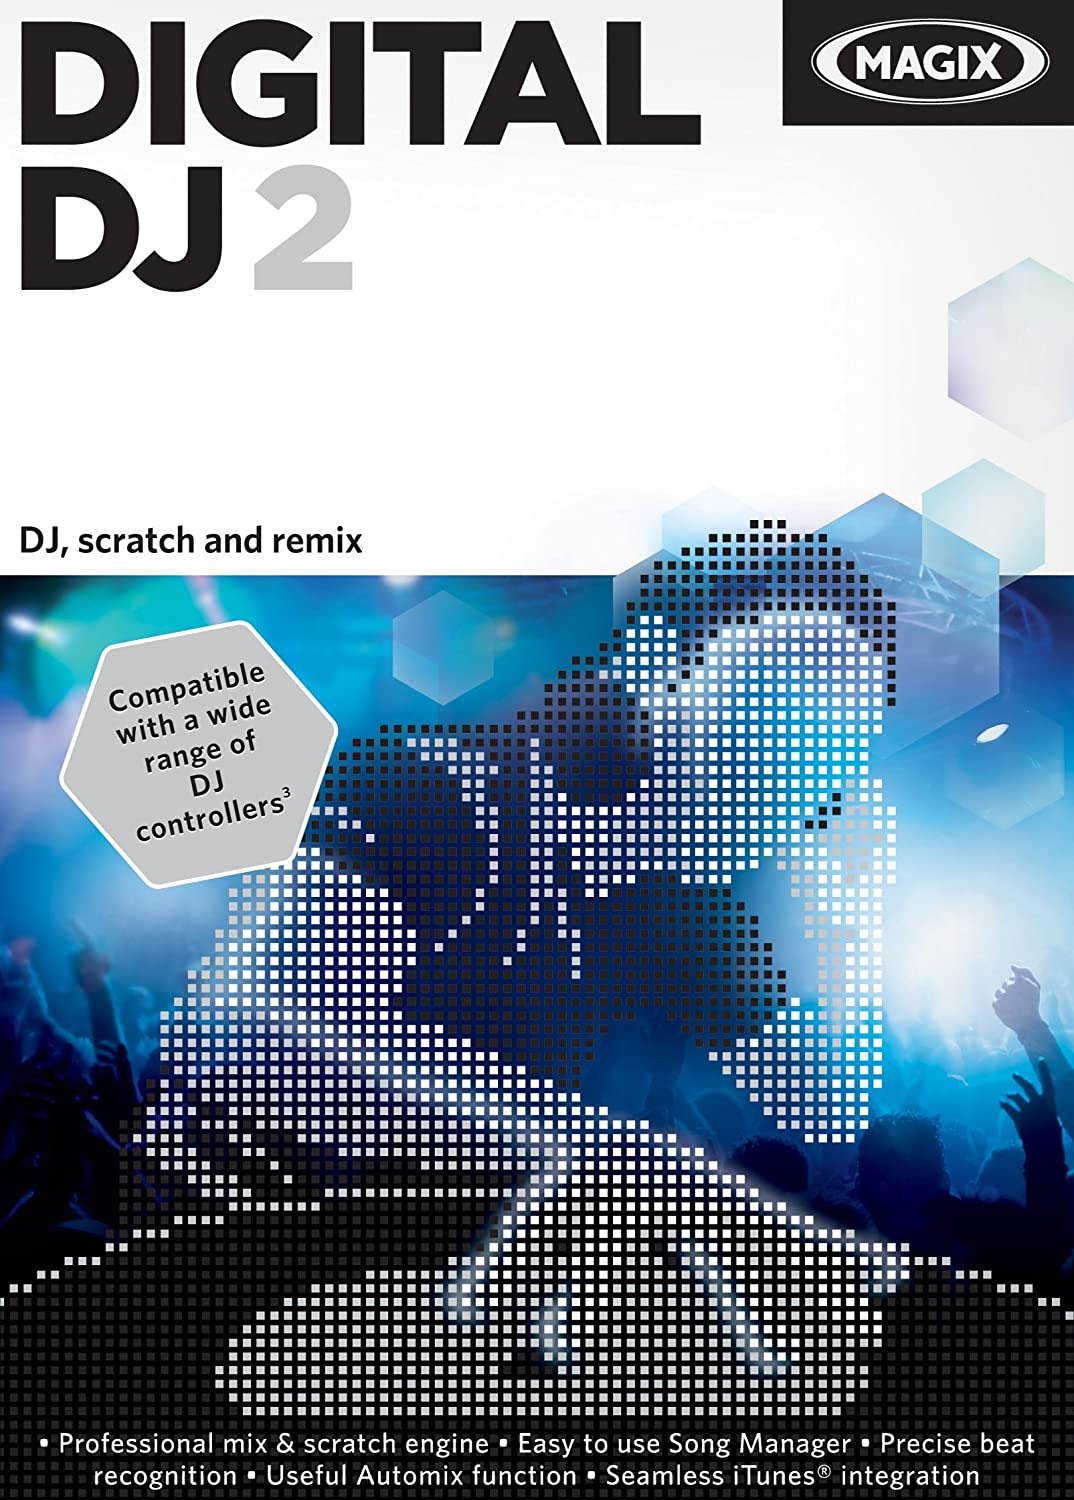 MAGIX Digital DJ 2 for Mac [Download]